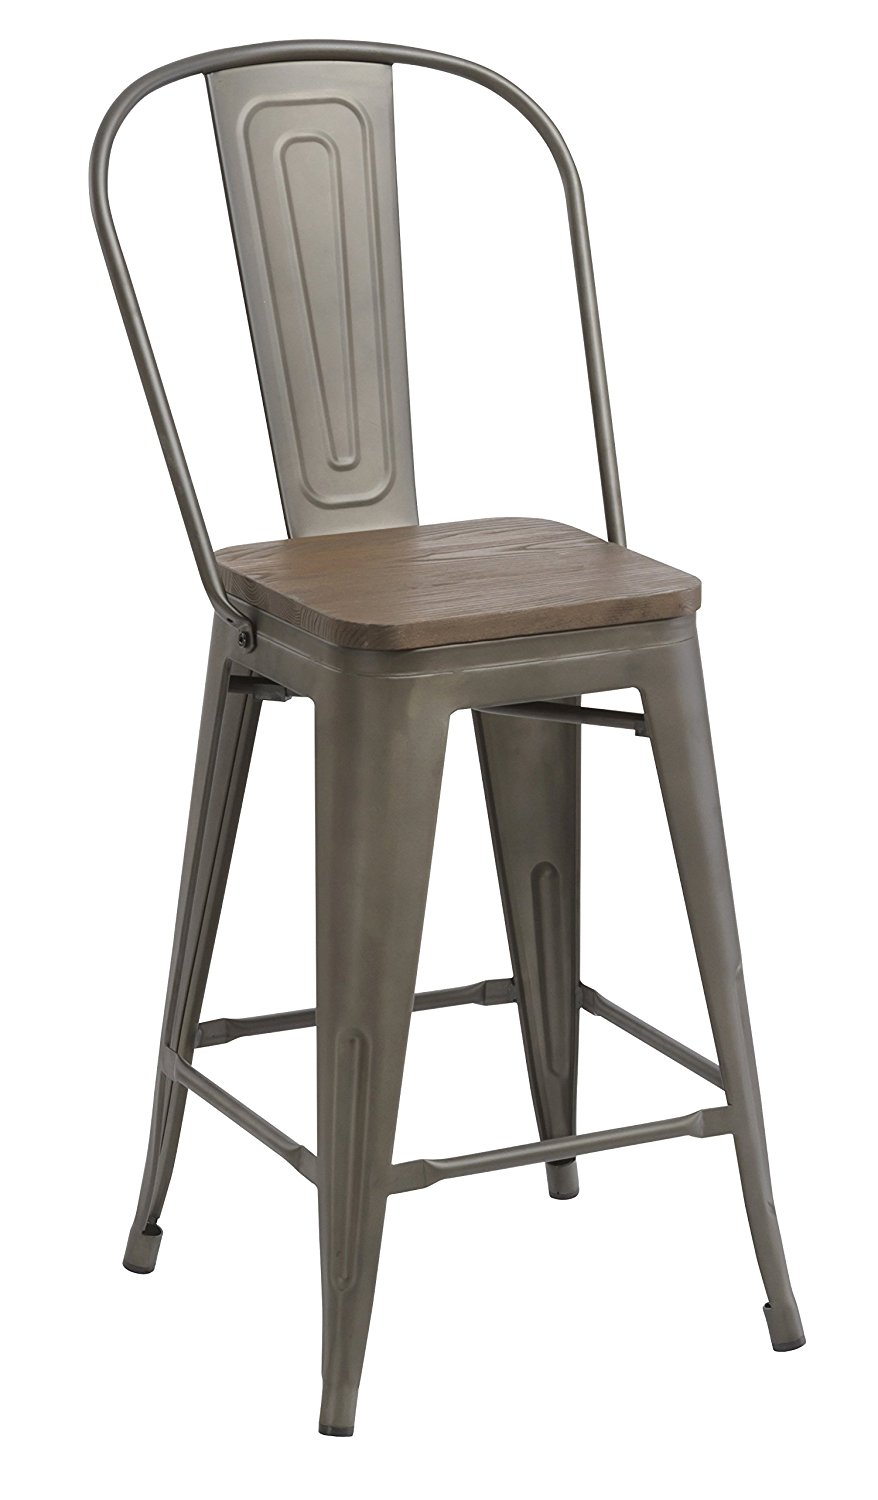 24Bar Stool Chair High Back Natural Wooden seat Set of 2